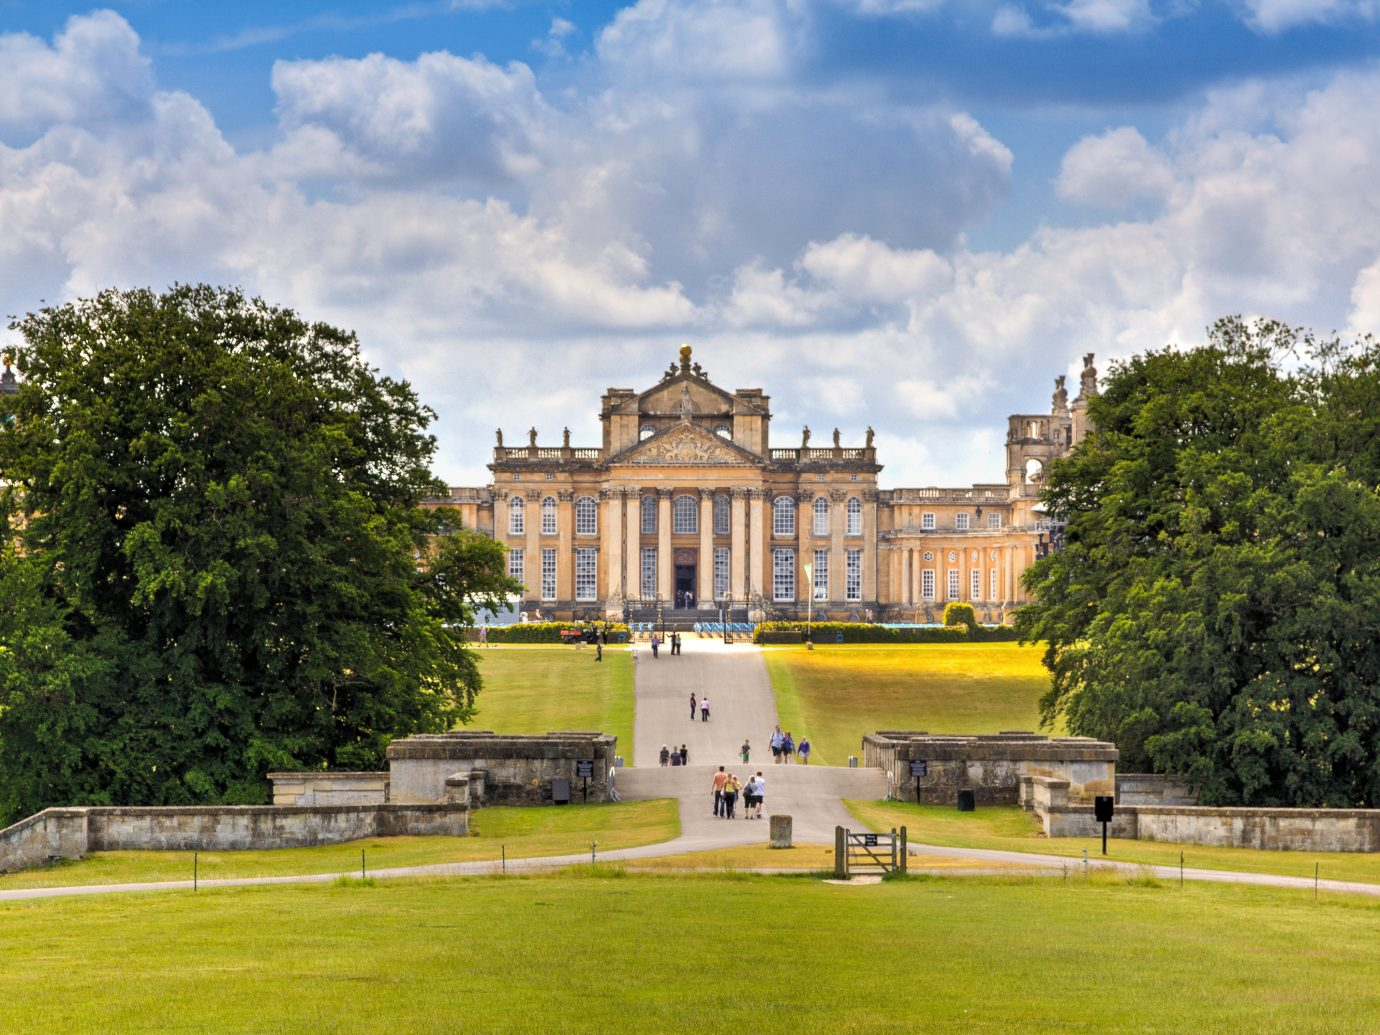 Blenheim Palace, Woodstock, Oxfordshire, England